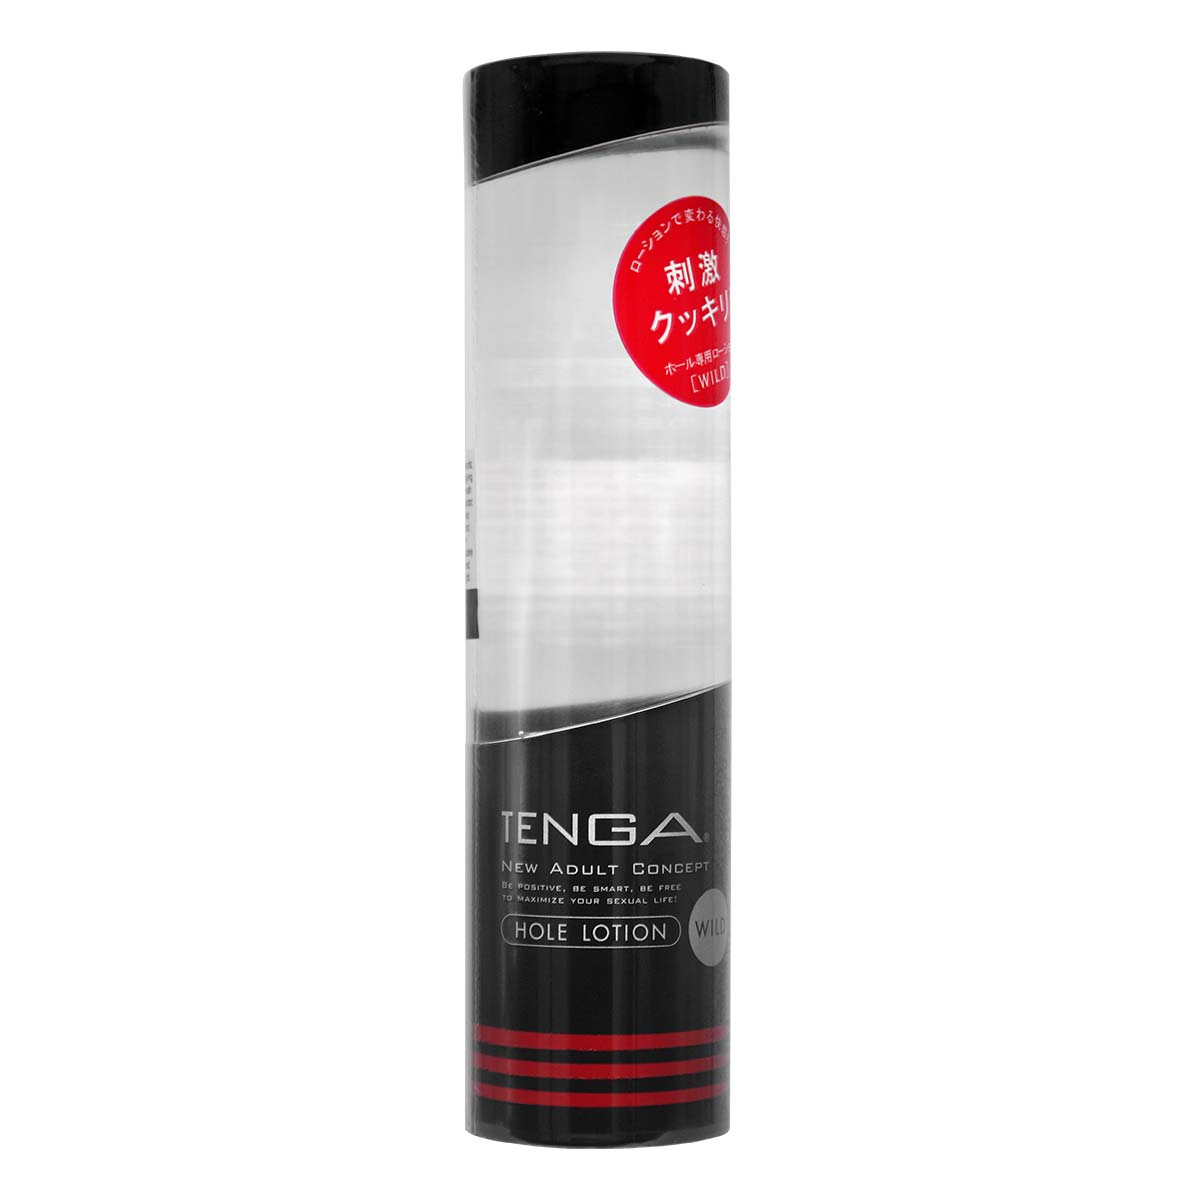 TENGA HOLE LOTION WILD 170ml Water-based Lubricant